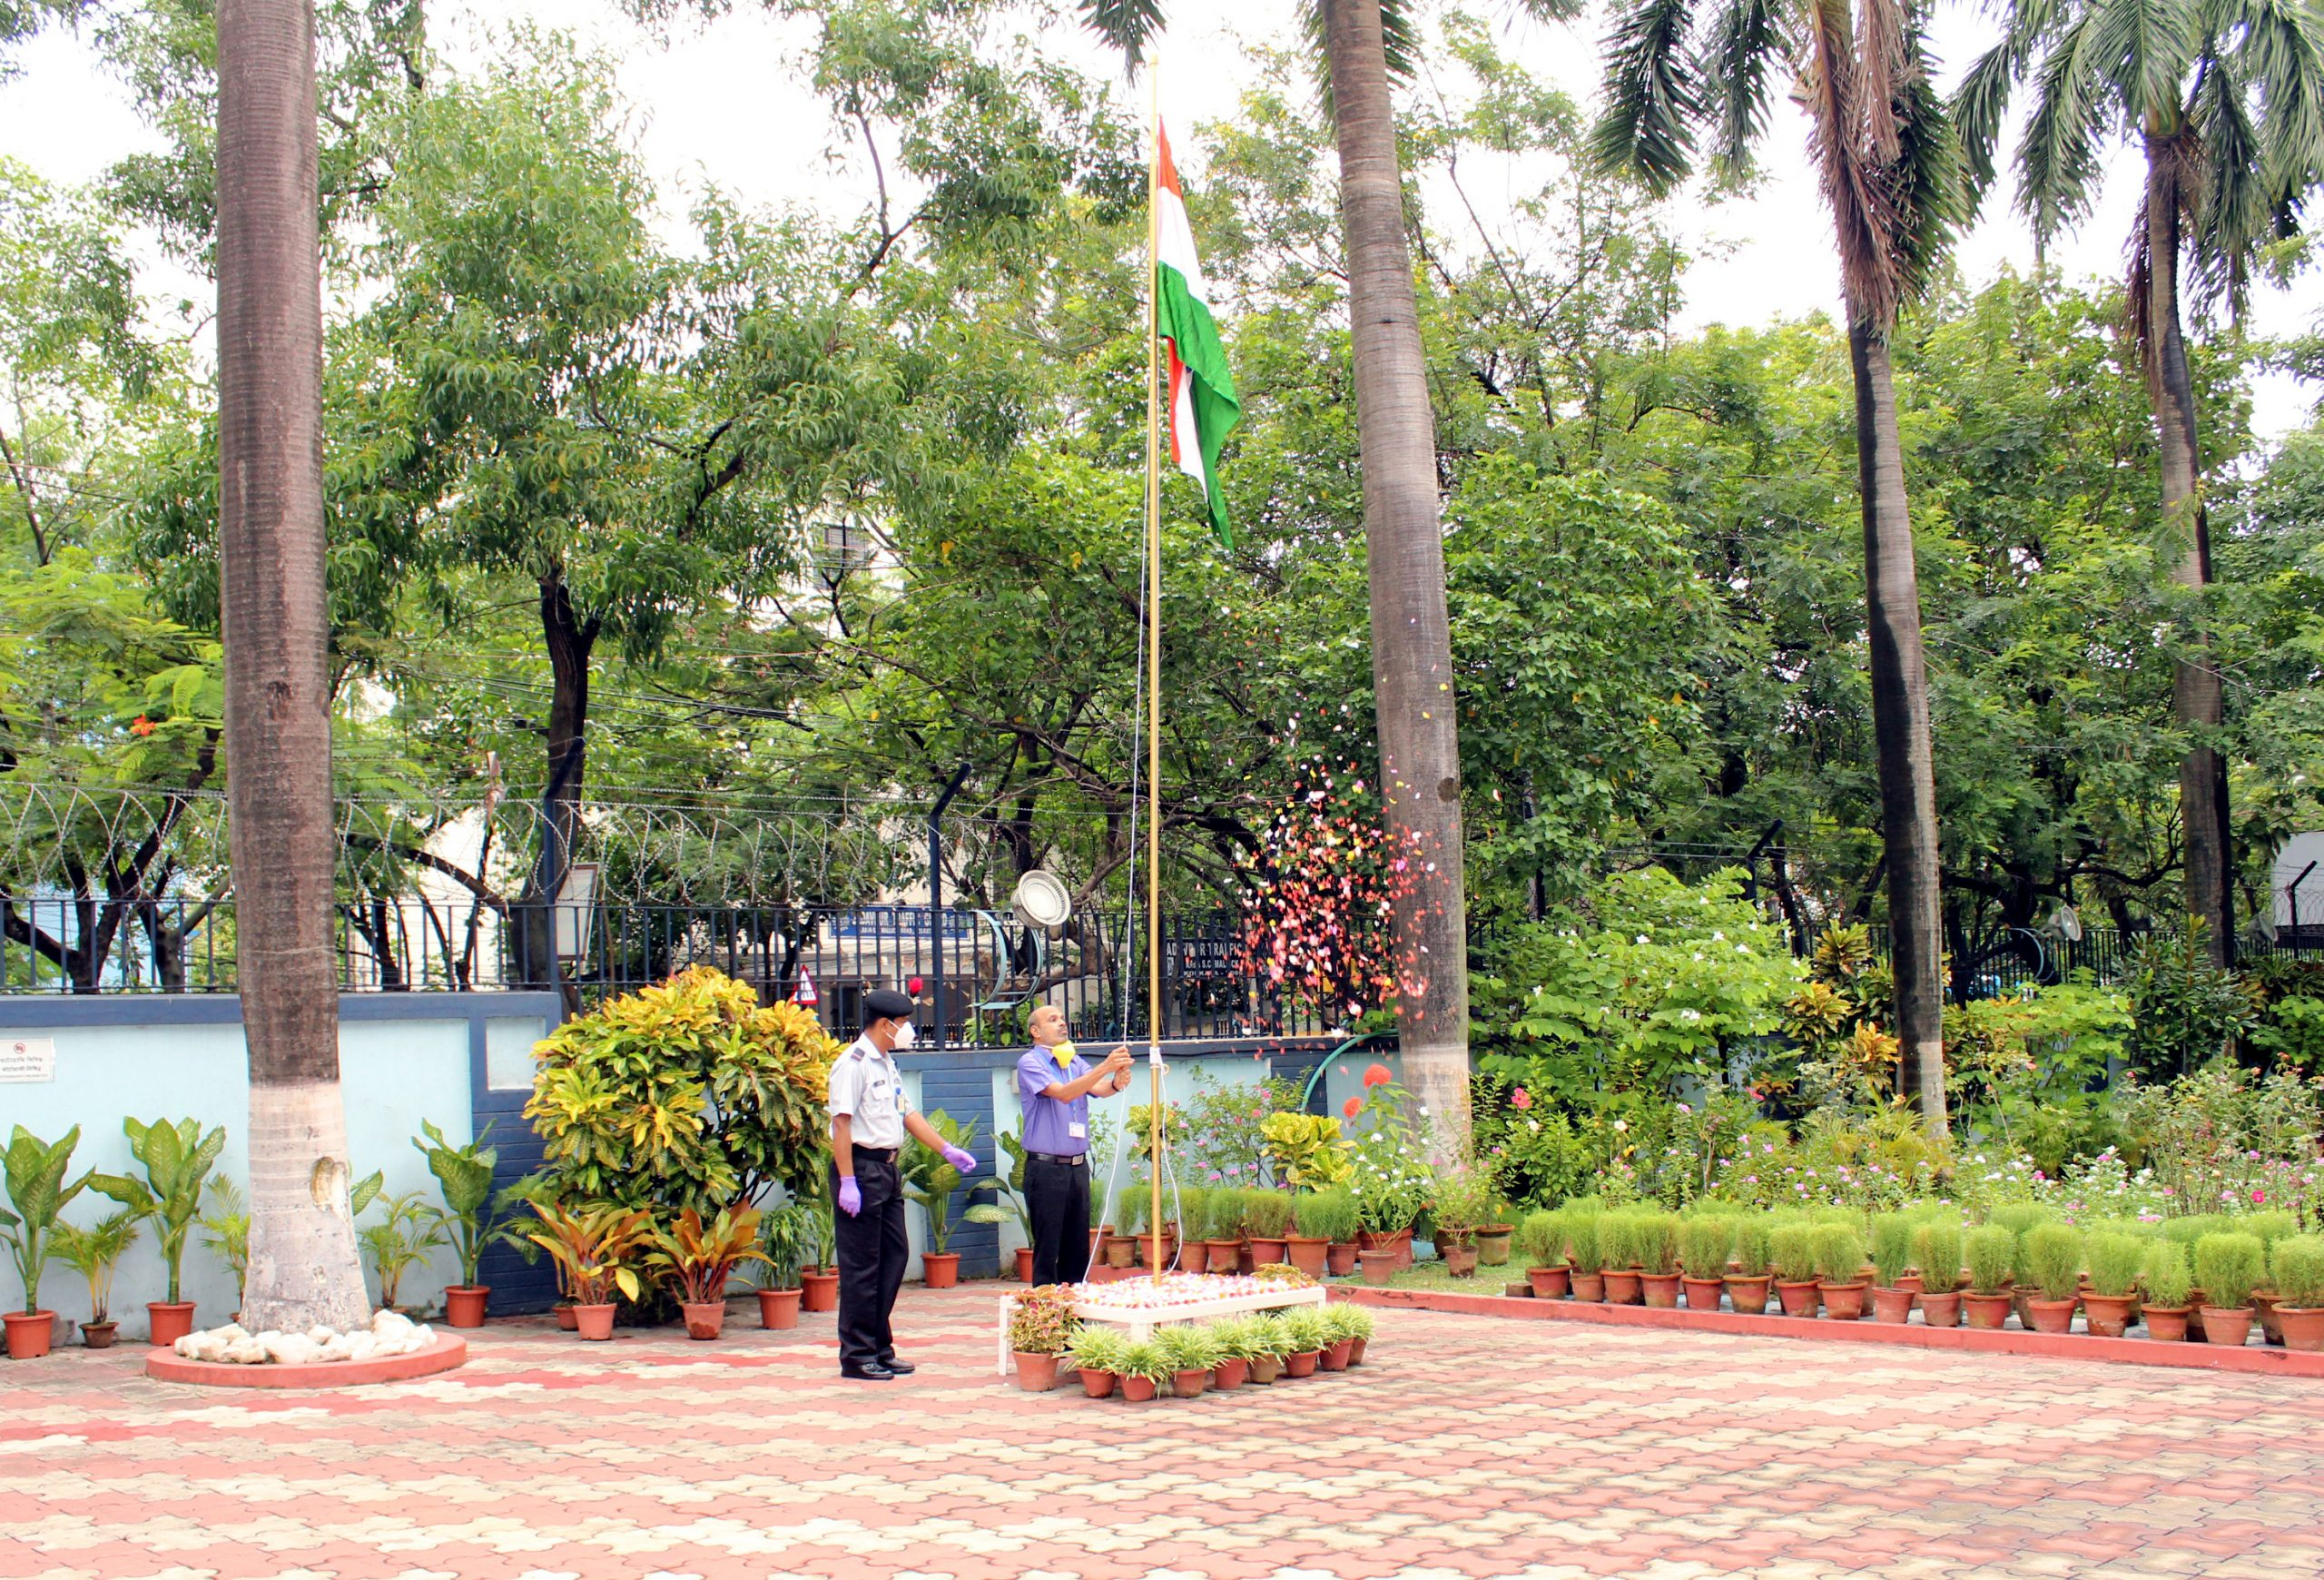 Dr K Muraleedharan hoisting the flag on Independence Day on August 15, 2020